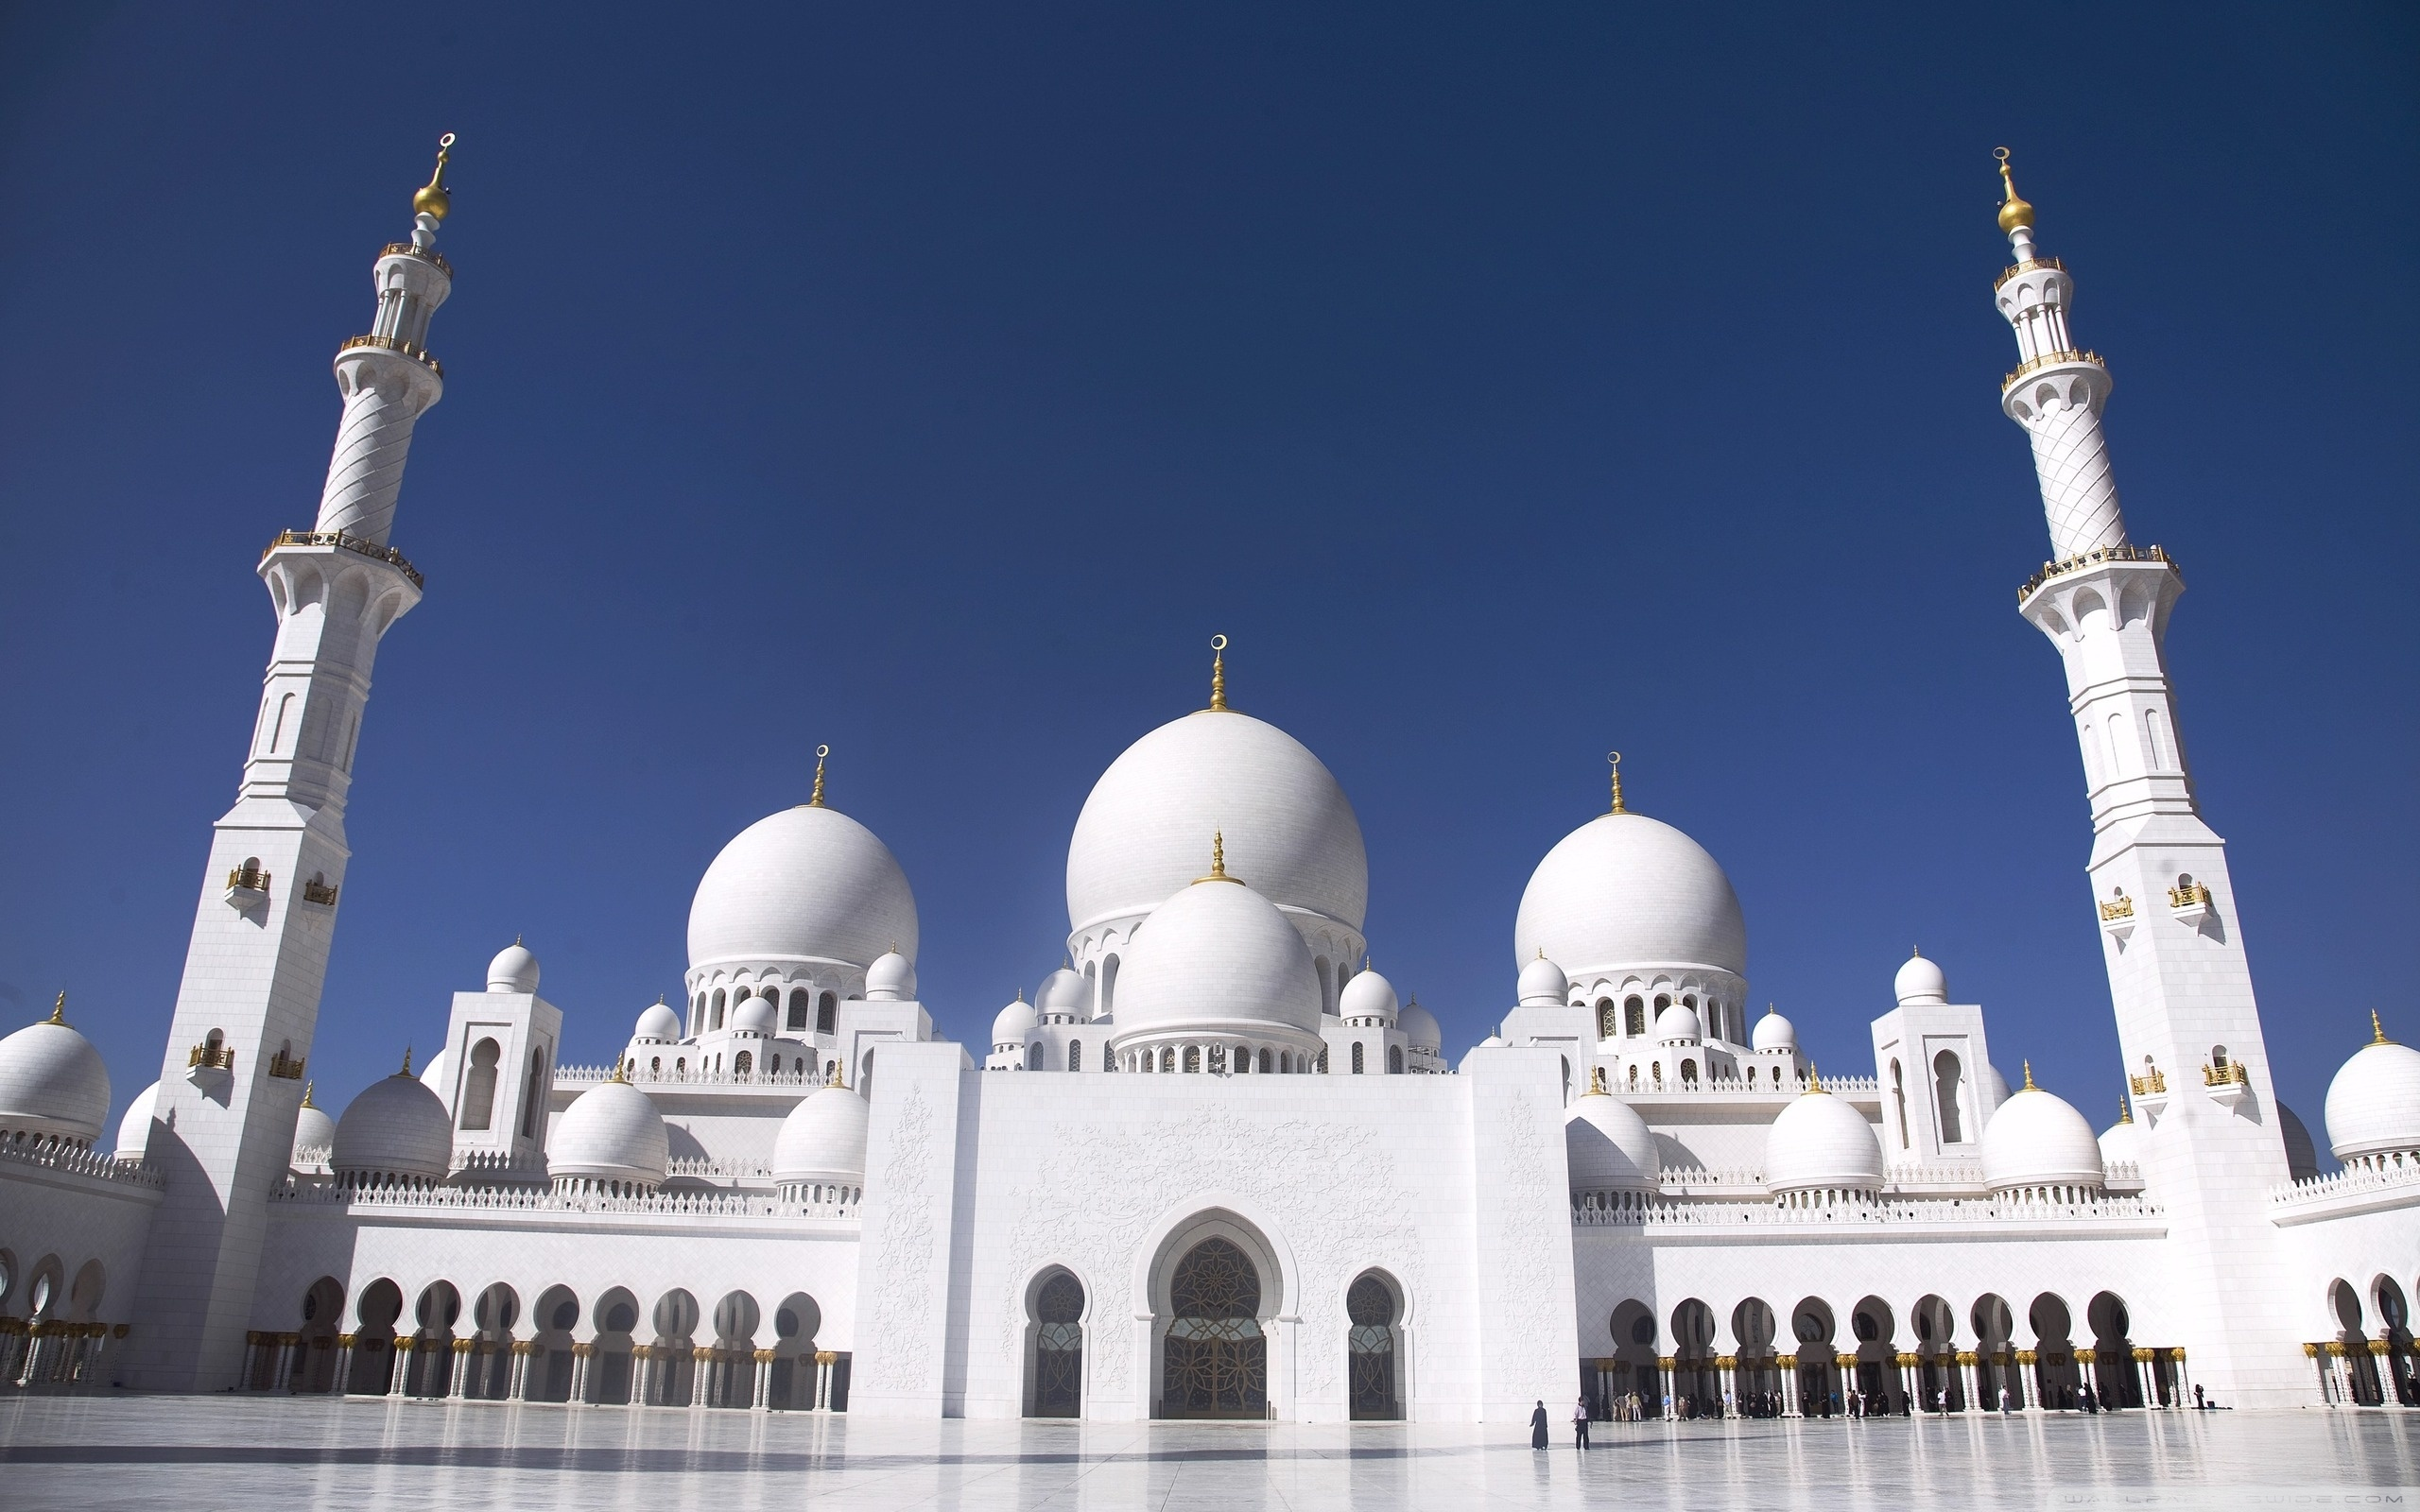 Sheikh Zayed Grand Mosque Abu Dhabi, Sheikh Zayed Grand Mosque, Abu Dhabi, United Arab Emirates ❤ 4K ...